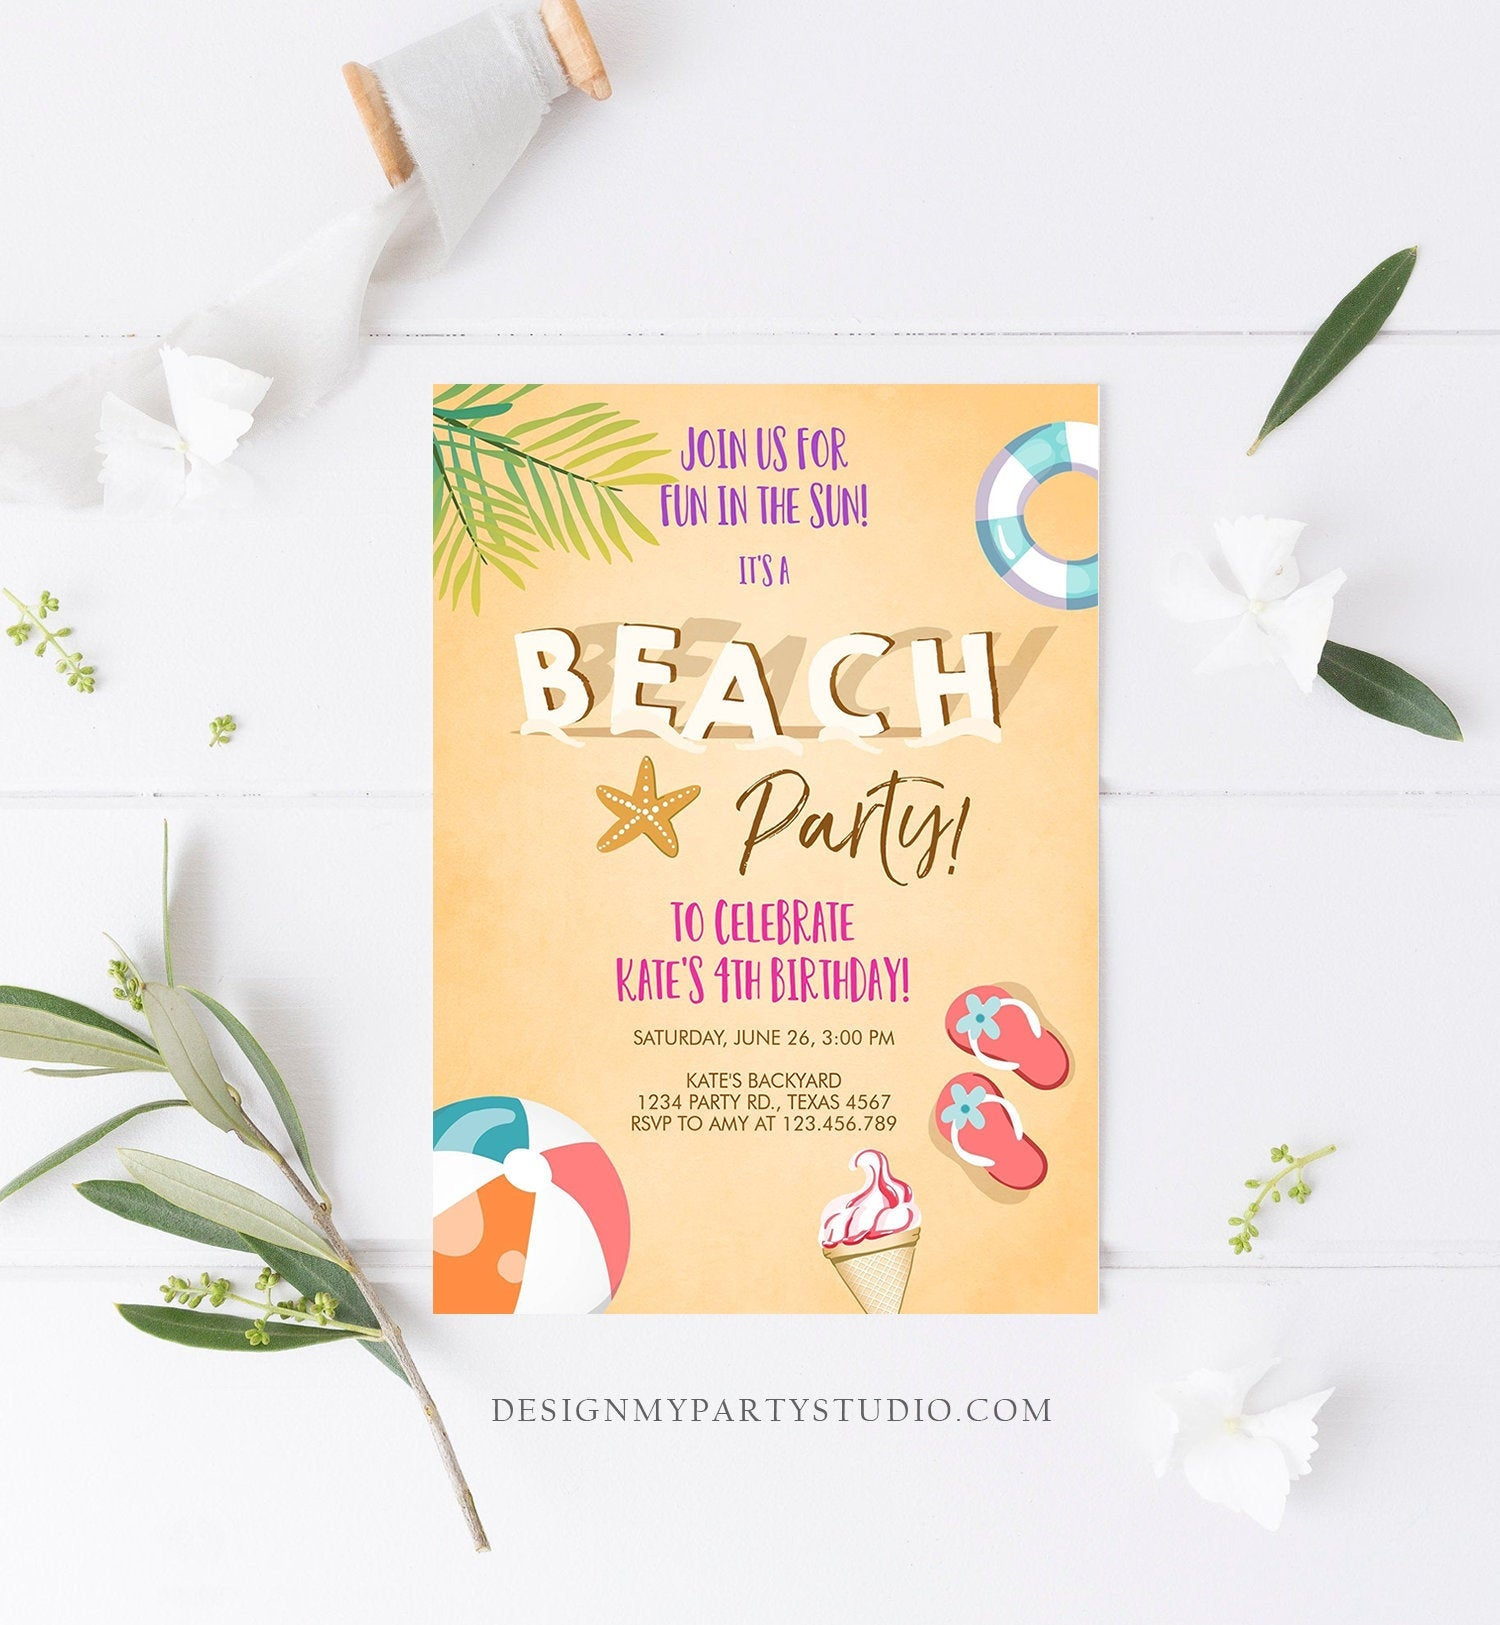 Editable Beach Party Invitation Birthday Invite Surf Party Summer Sea Sand Beach Ball Girl Pink Download Printable Template Corjl 0158